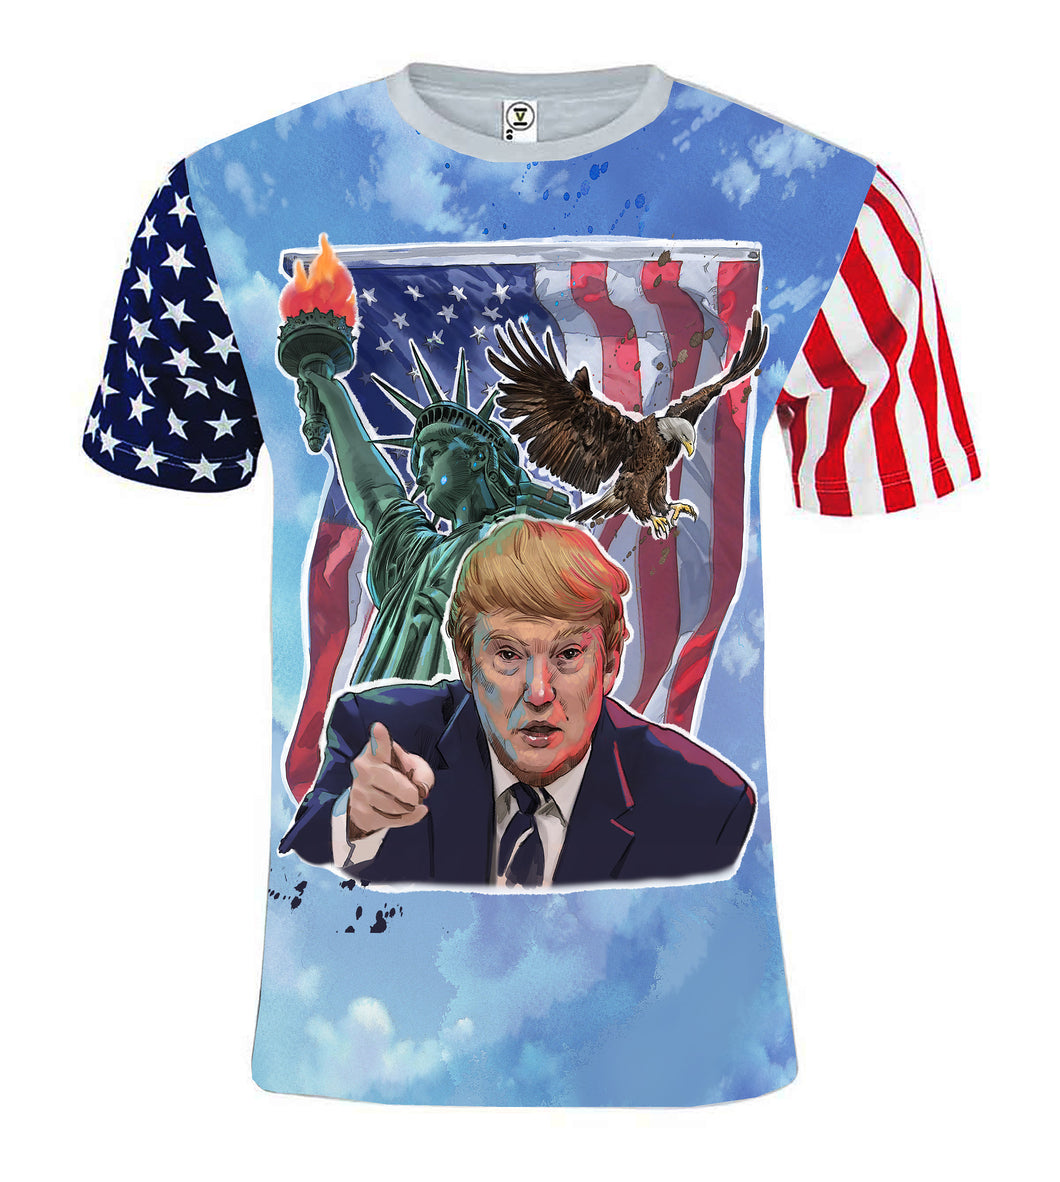 Donald Trump liberty Original Artwork print T shirt limited edition All over printing version